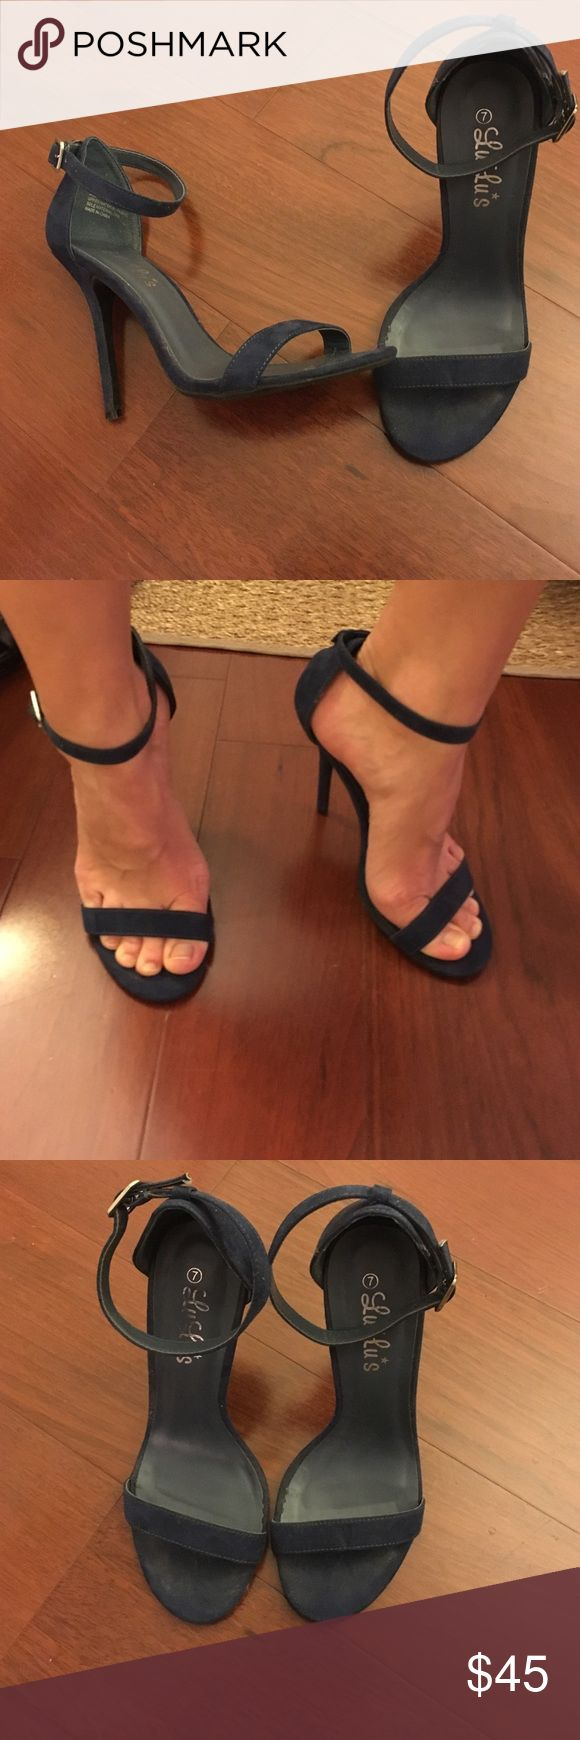 Simple navy blue ankle strap dress sandal Perfect navy blue ankle strap sandals, seamless, great with jeans Lulu's Shoes Heels